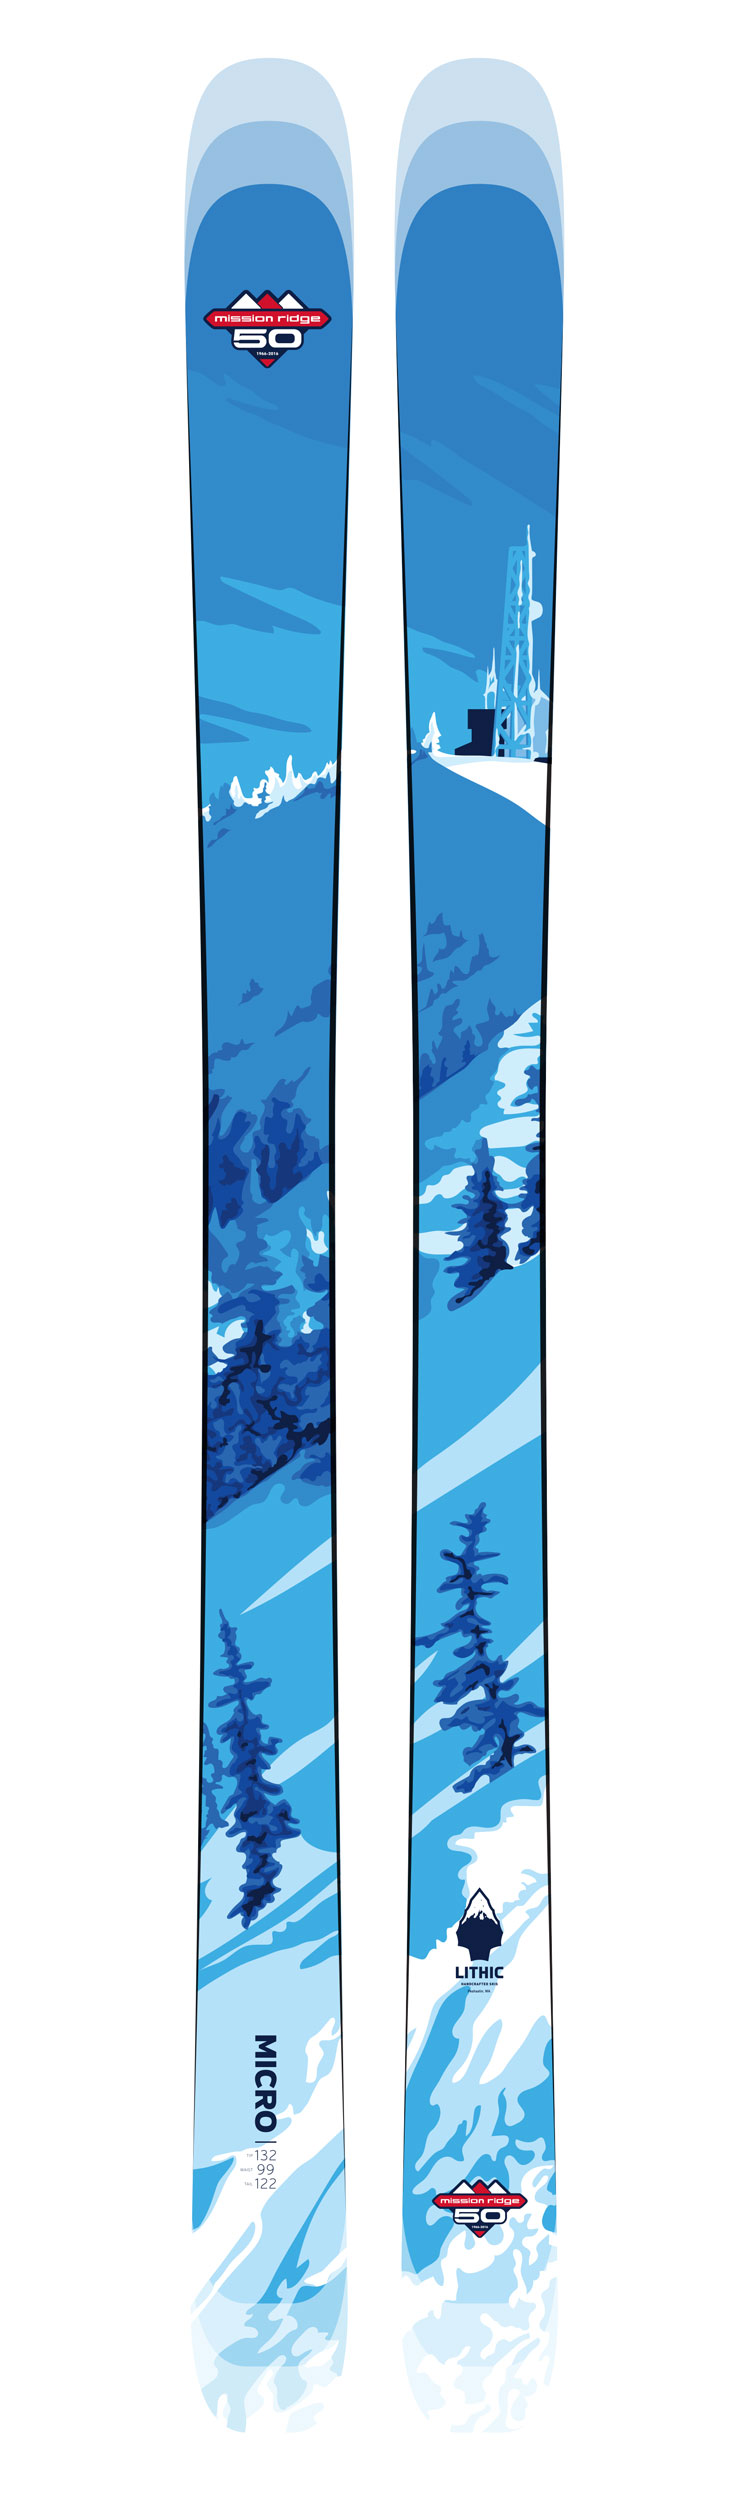 Custom ski featuring the view out Windy Ridge